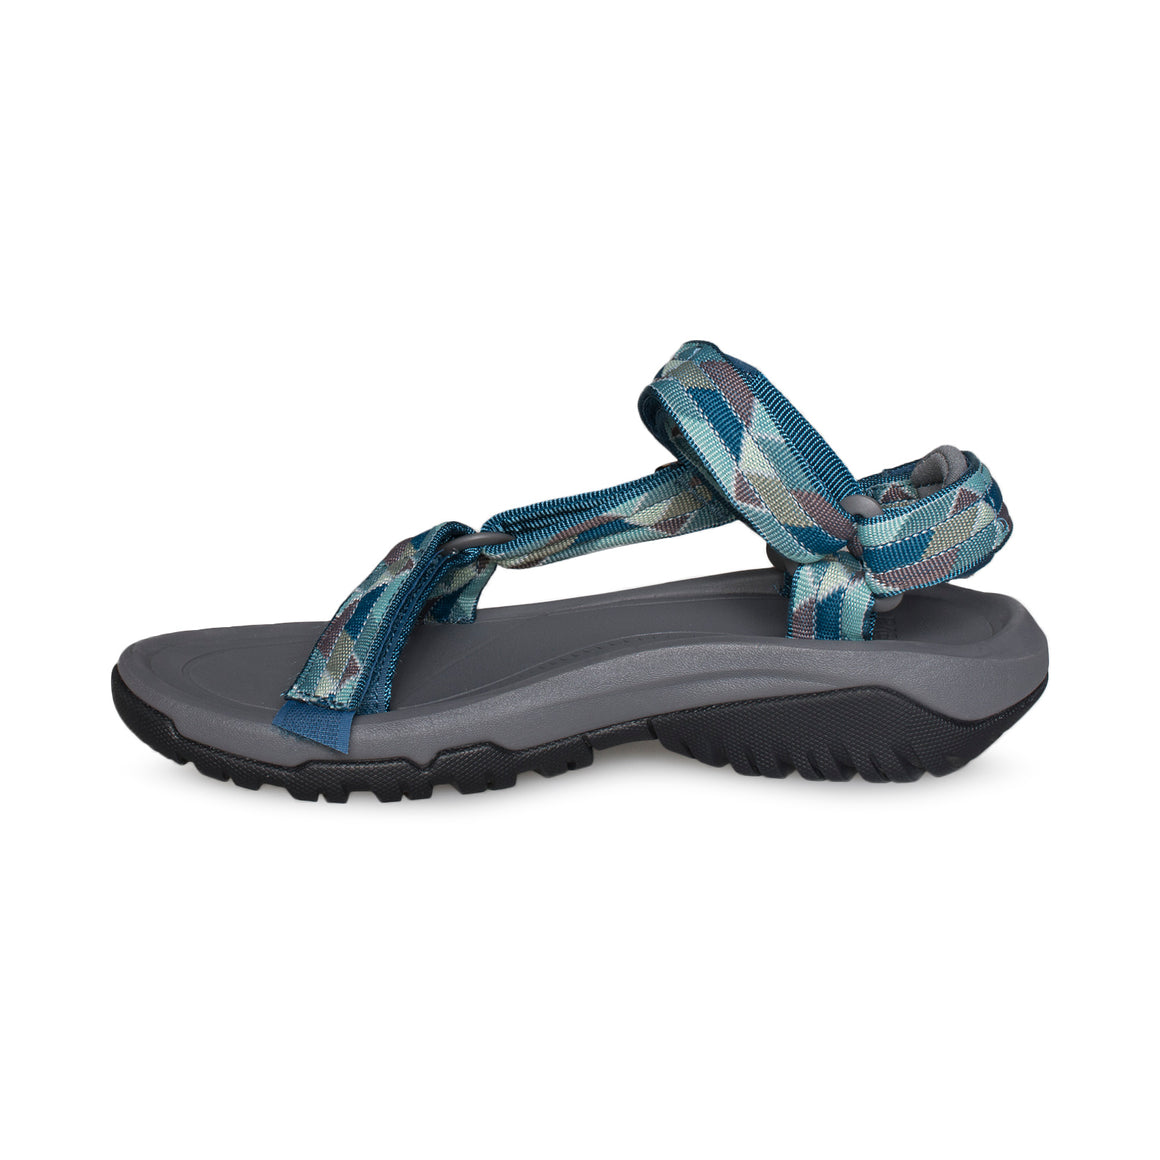 3a2fc27168b9 ... Teva Hurricane XLT 2 Kerne Blue Multi Sandals - Women s